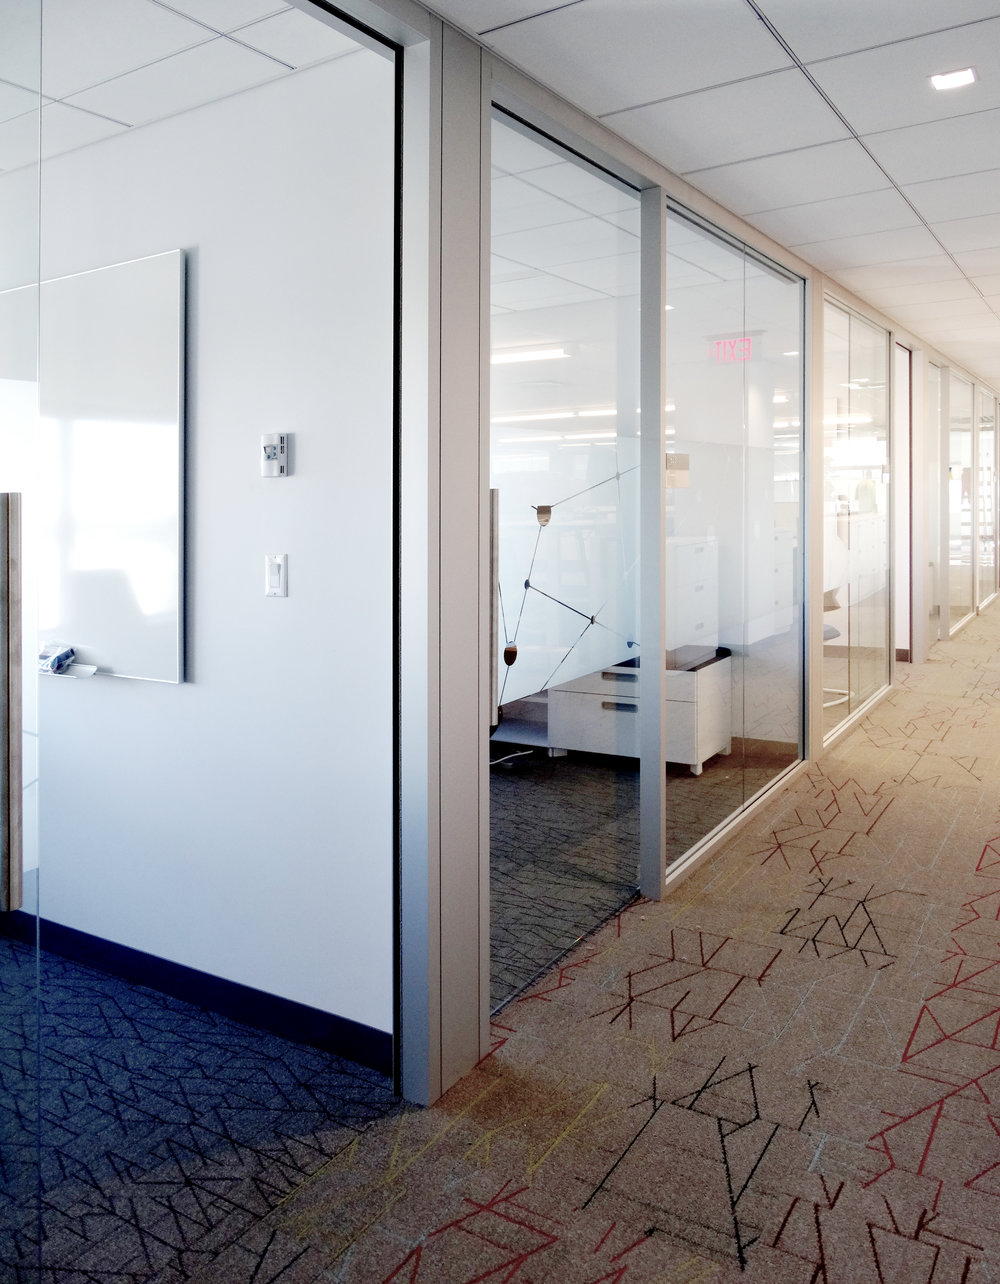 Litespace Demountable Glass BioTech Walls - Spaceworks AI.jpg